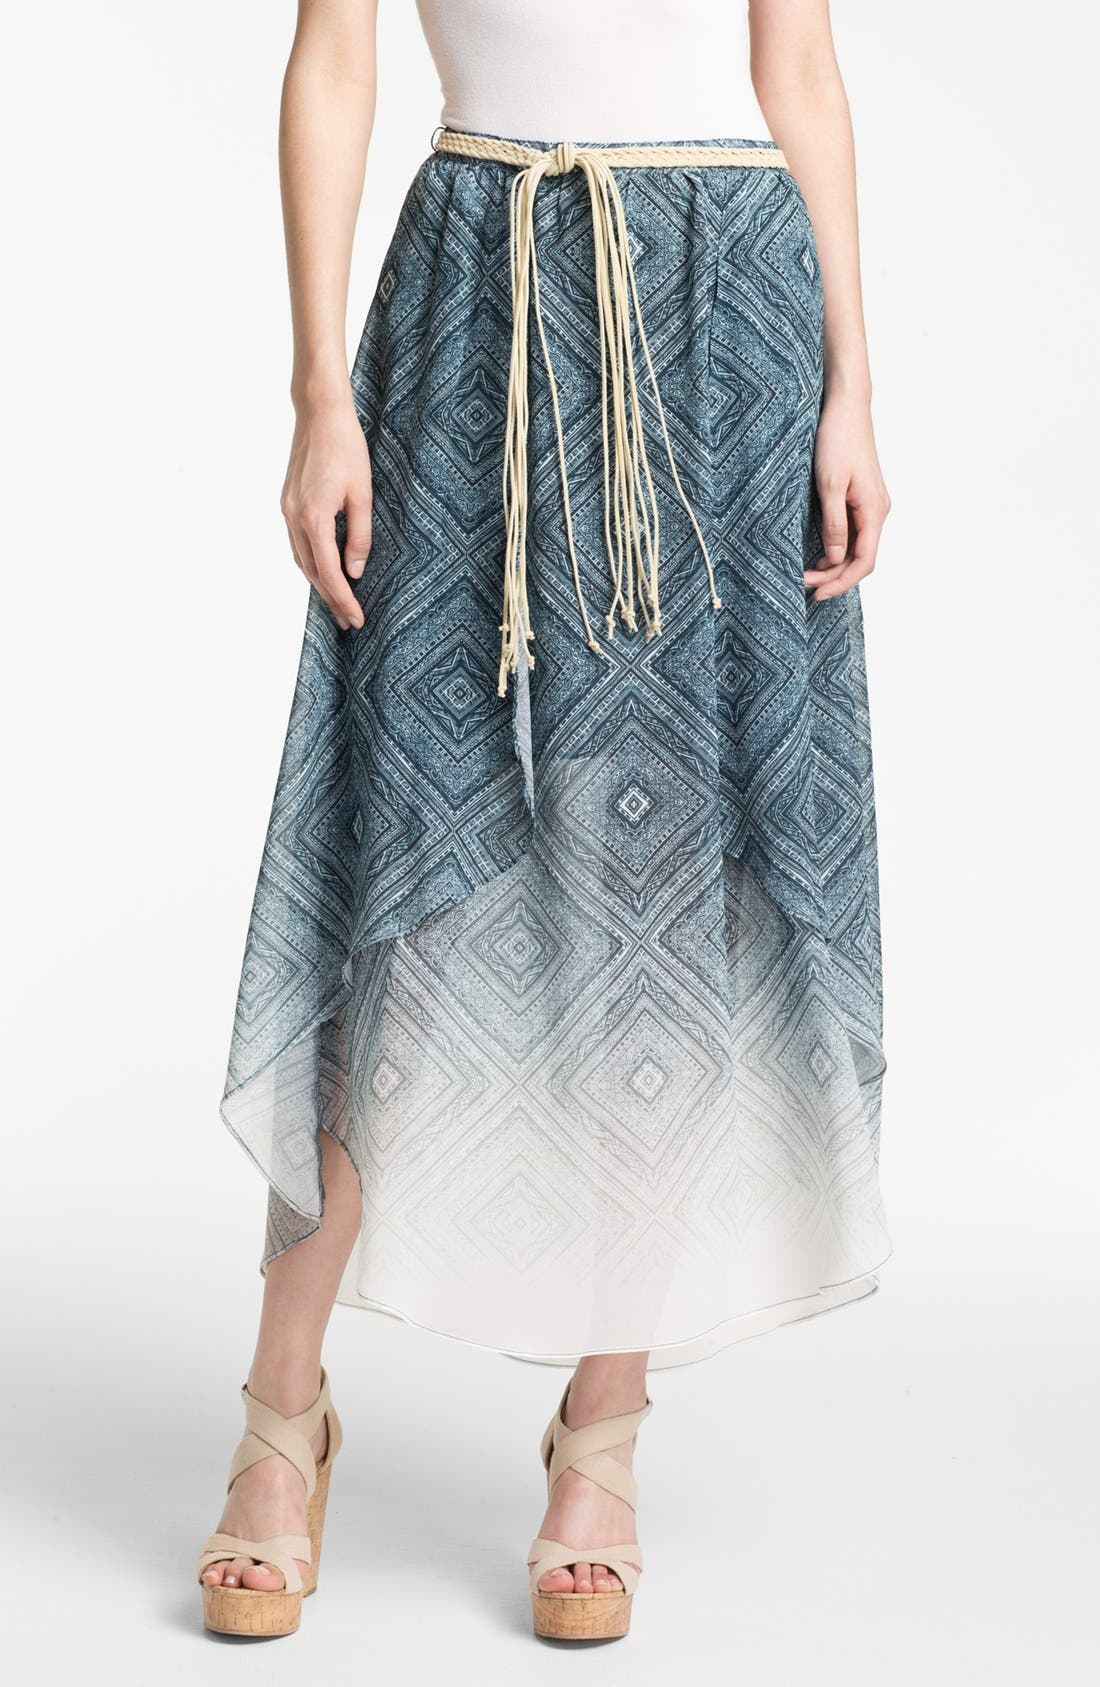 Main Image - Sanctuary Handkerchief Chiffon Skirt